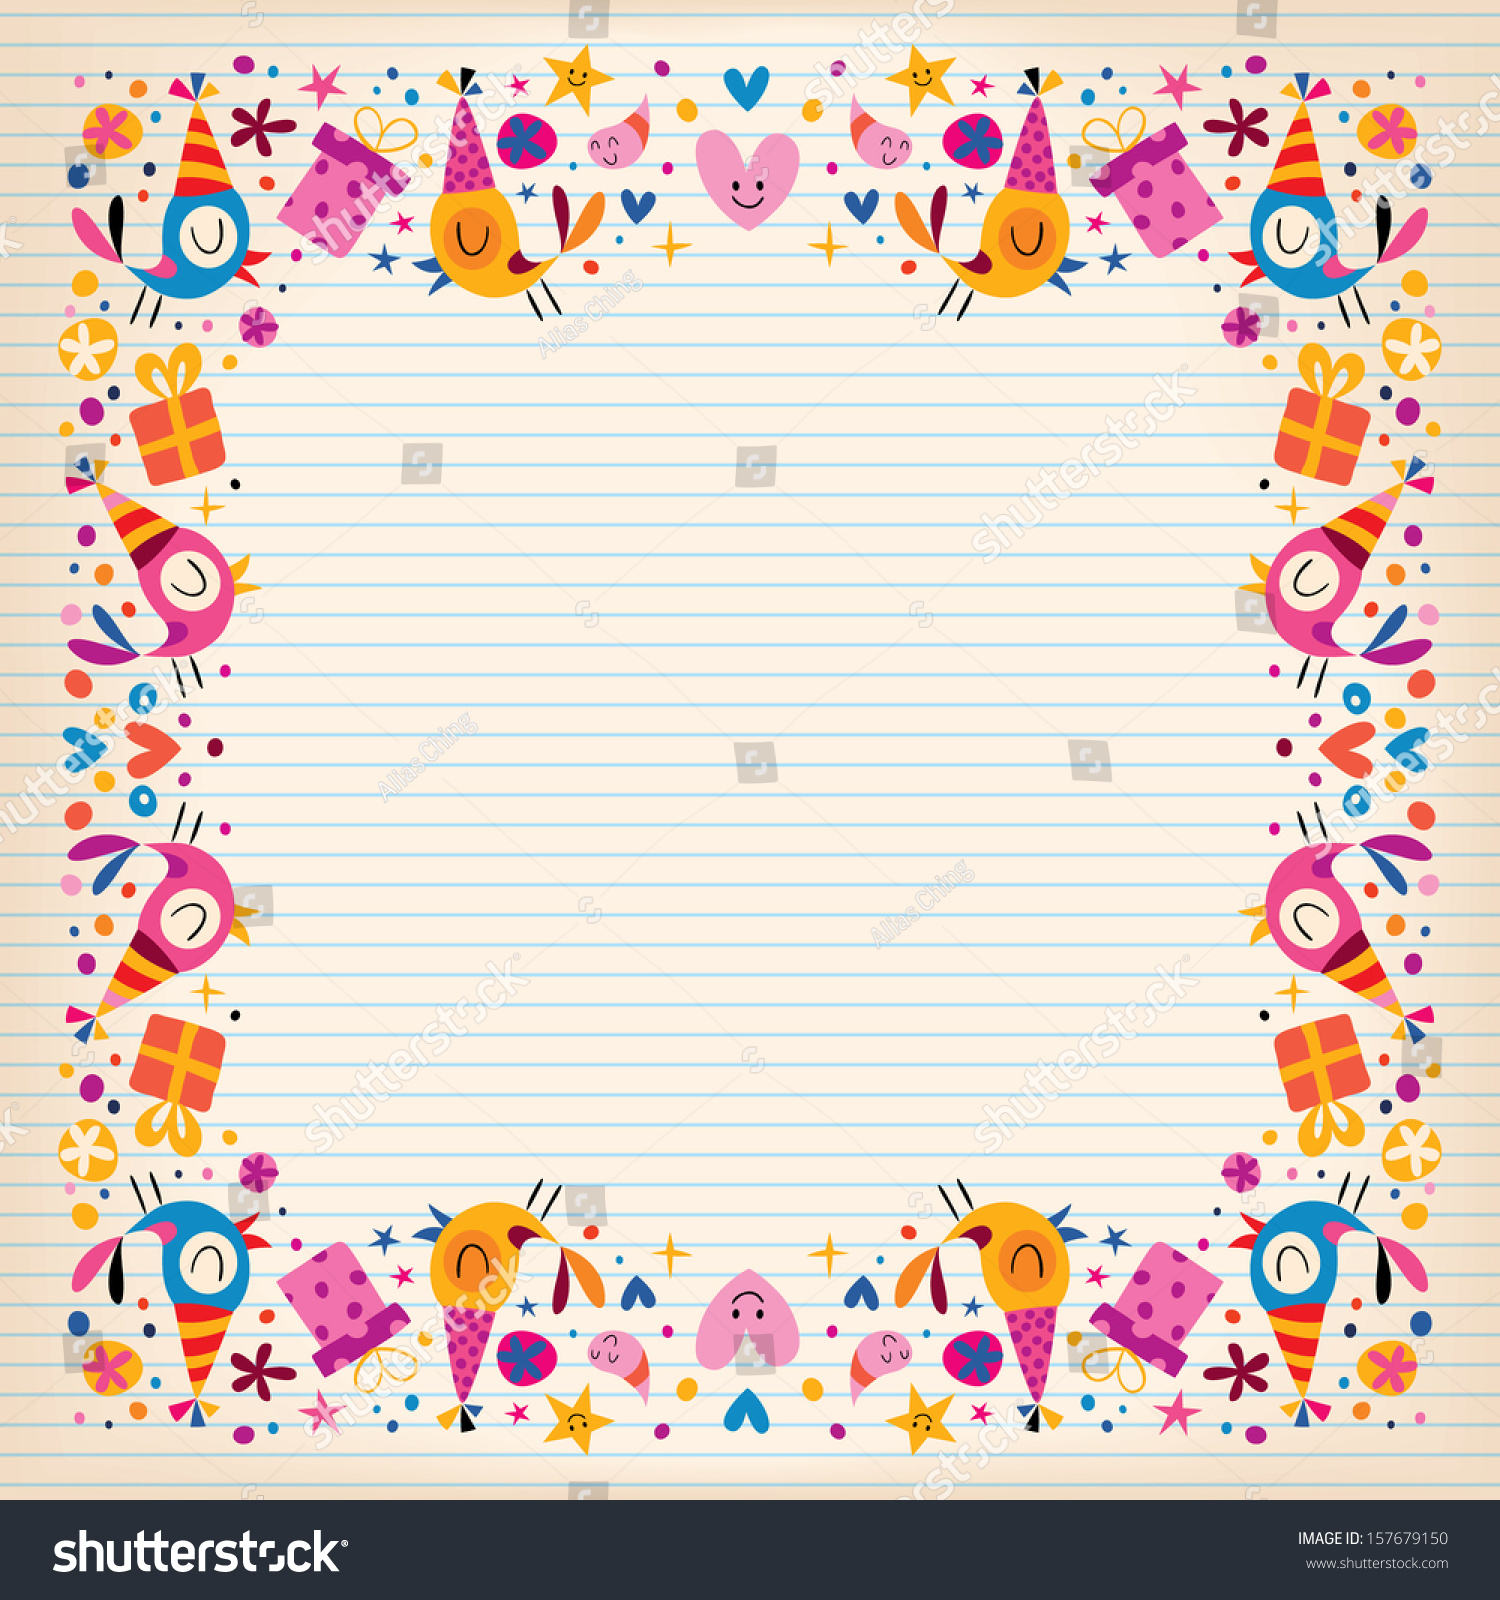 happy birthday border paper ; stock-vector-happy-birthday-border-lined-paper-card-with-space-for-text-157679150